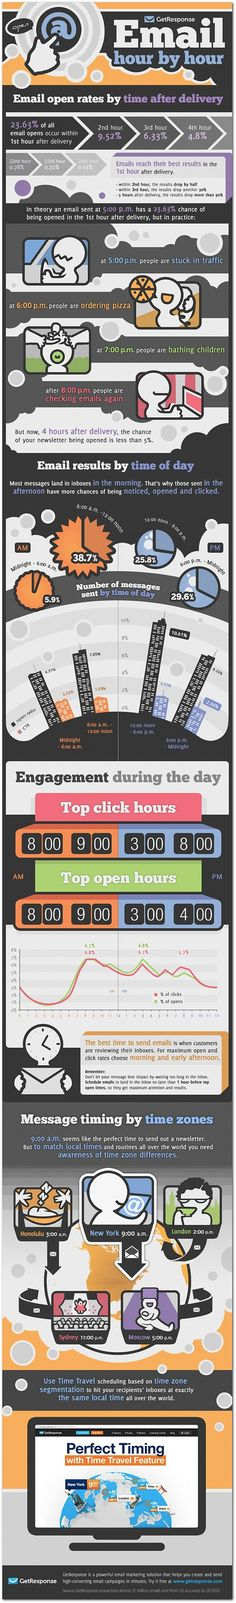 #email, Hour By Hour. #emailmarketing #infographic